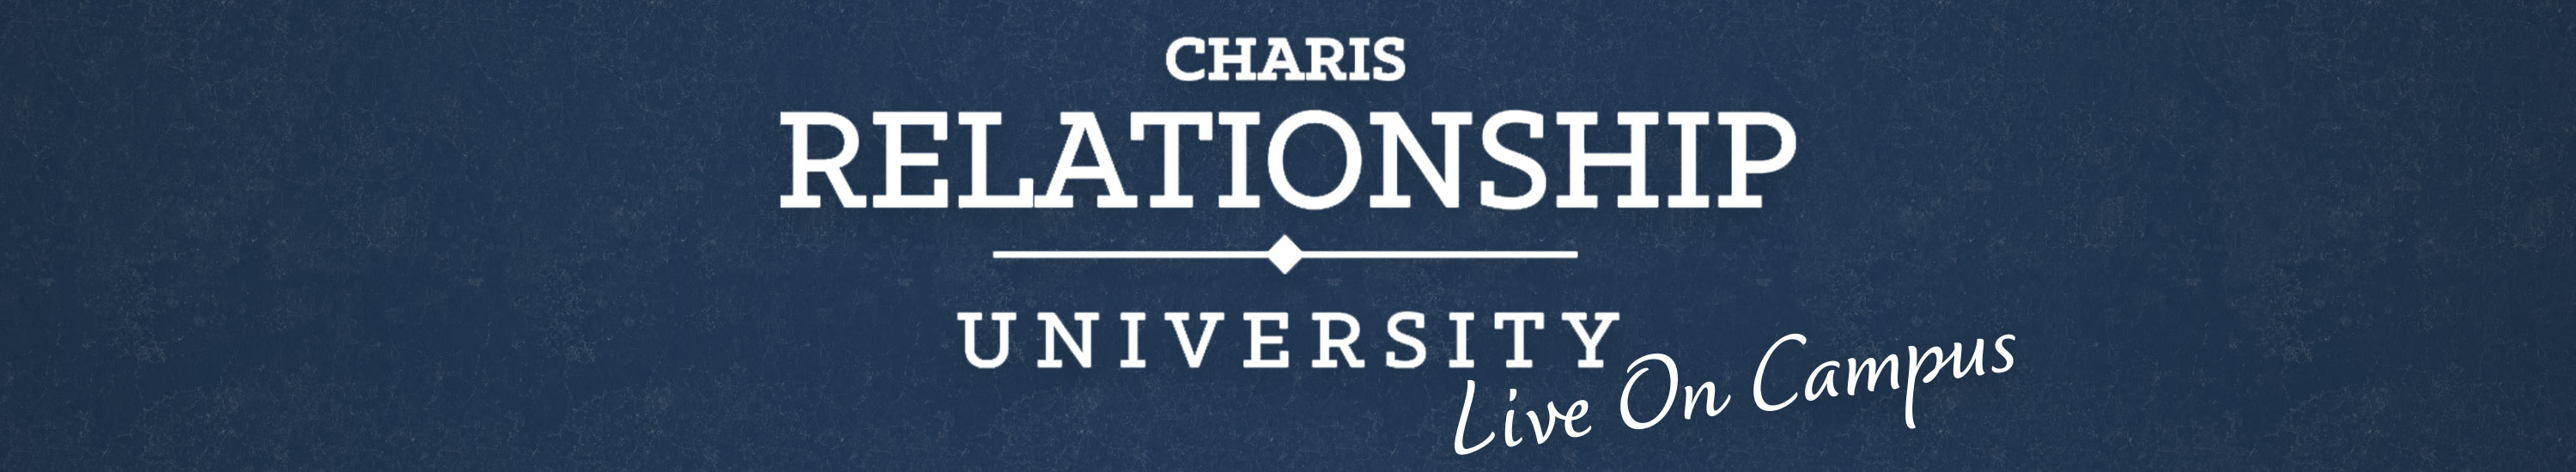 Charis: Relationship University - Live on Campus